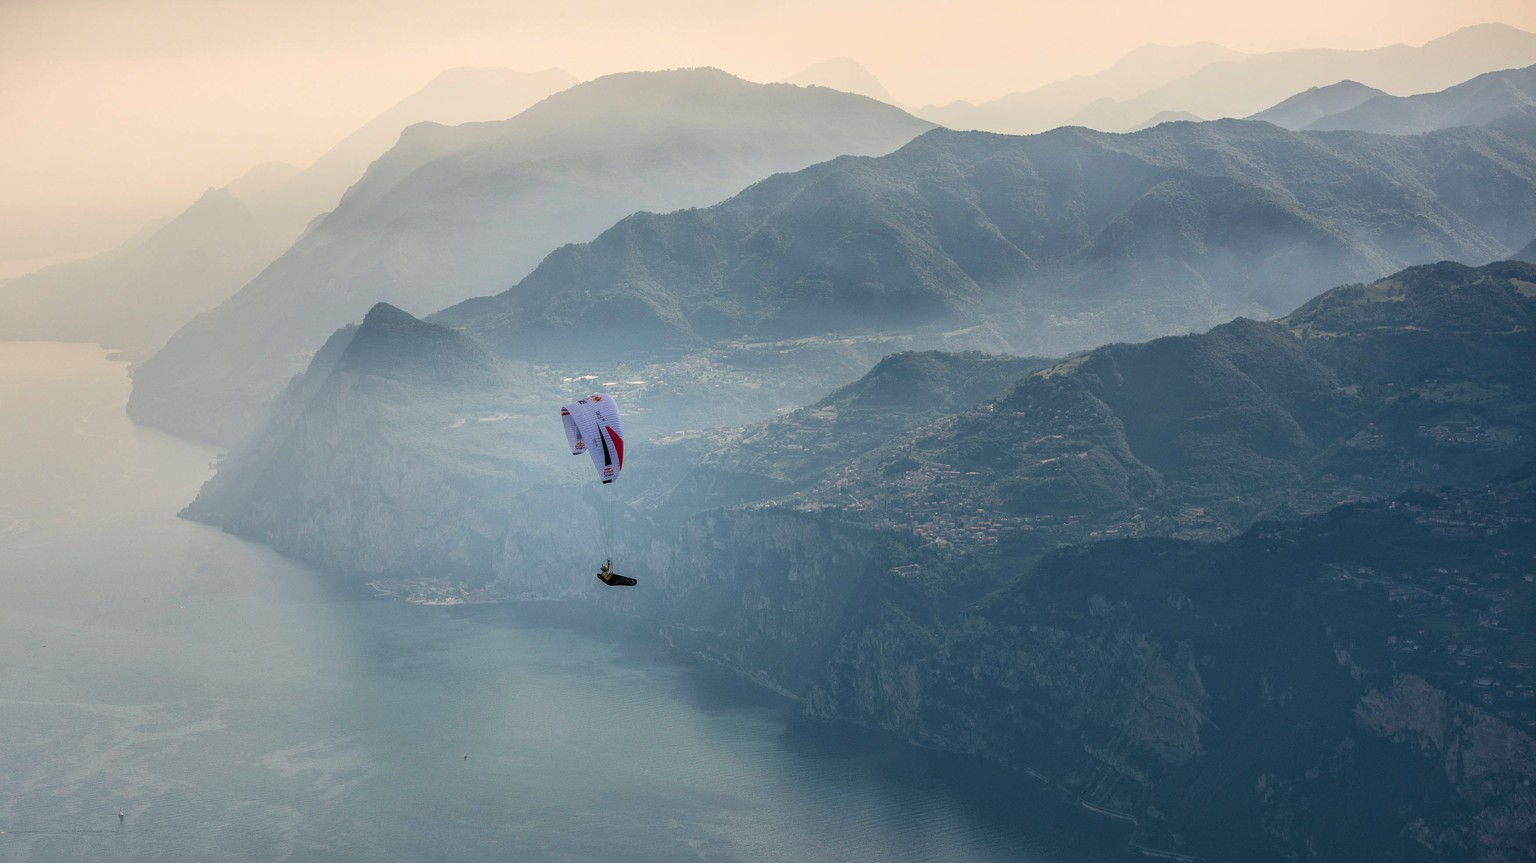 epa06073926 A handout photo made available by Global Newsroom on 07 July 2017 of Christian Maurer (SUI1) flying during the Red Bull X-Alps above Lake Garda, Italy, 06 July 2017. At this extreme adventure race 31 pilots out of 20 nations have to fly from Salzburg/ Austria to Monaco passing turnpoints in Slovenia, Germany, Italy, Switzerland and France with a paraglider. The only alternative to manage the 2.500 kilometer distance is to hike.  EPA/SEBASTIAN MARKO  HANDOUT EDITORIAL USE ONLY/NO SALES